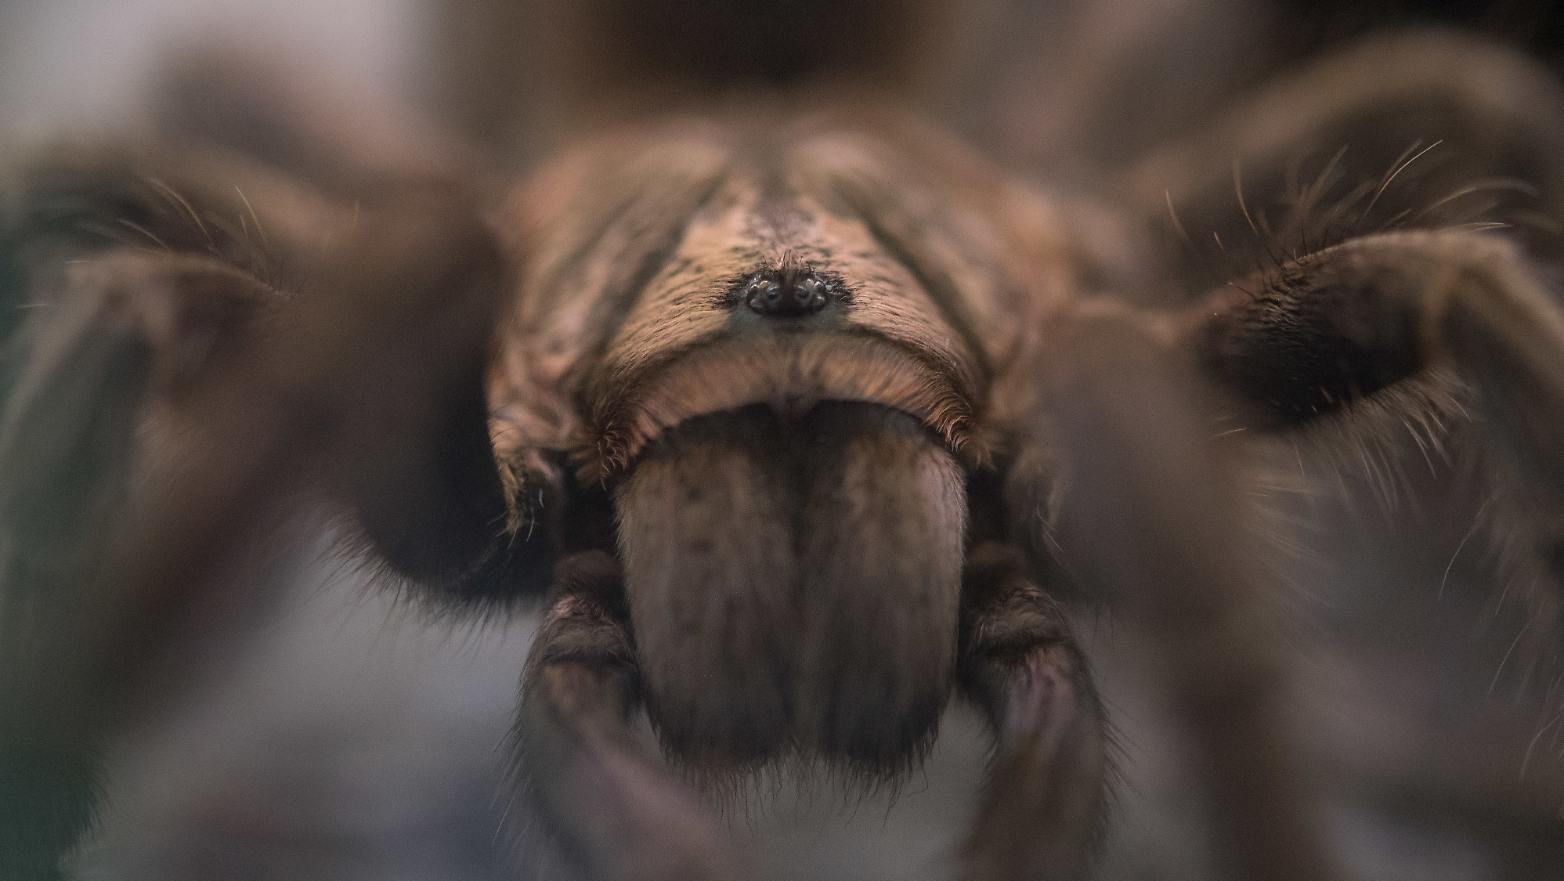 """We could not believe it"" -Spiders can kill mammals"